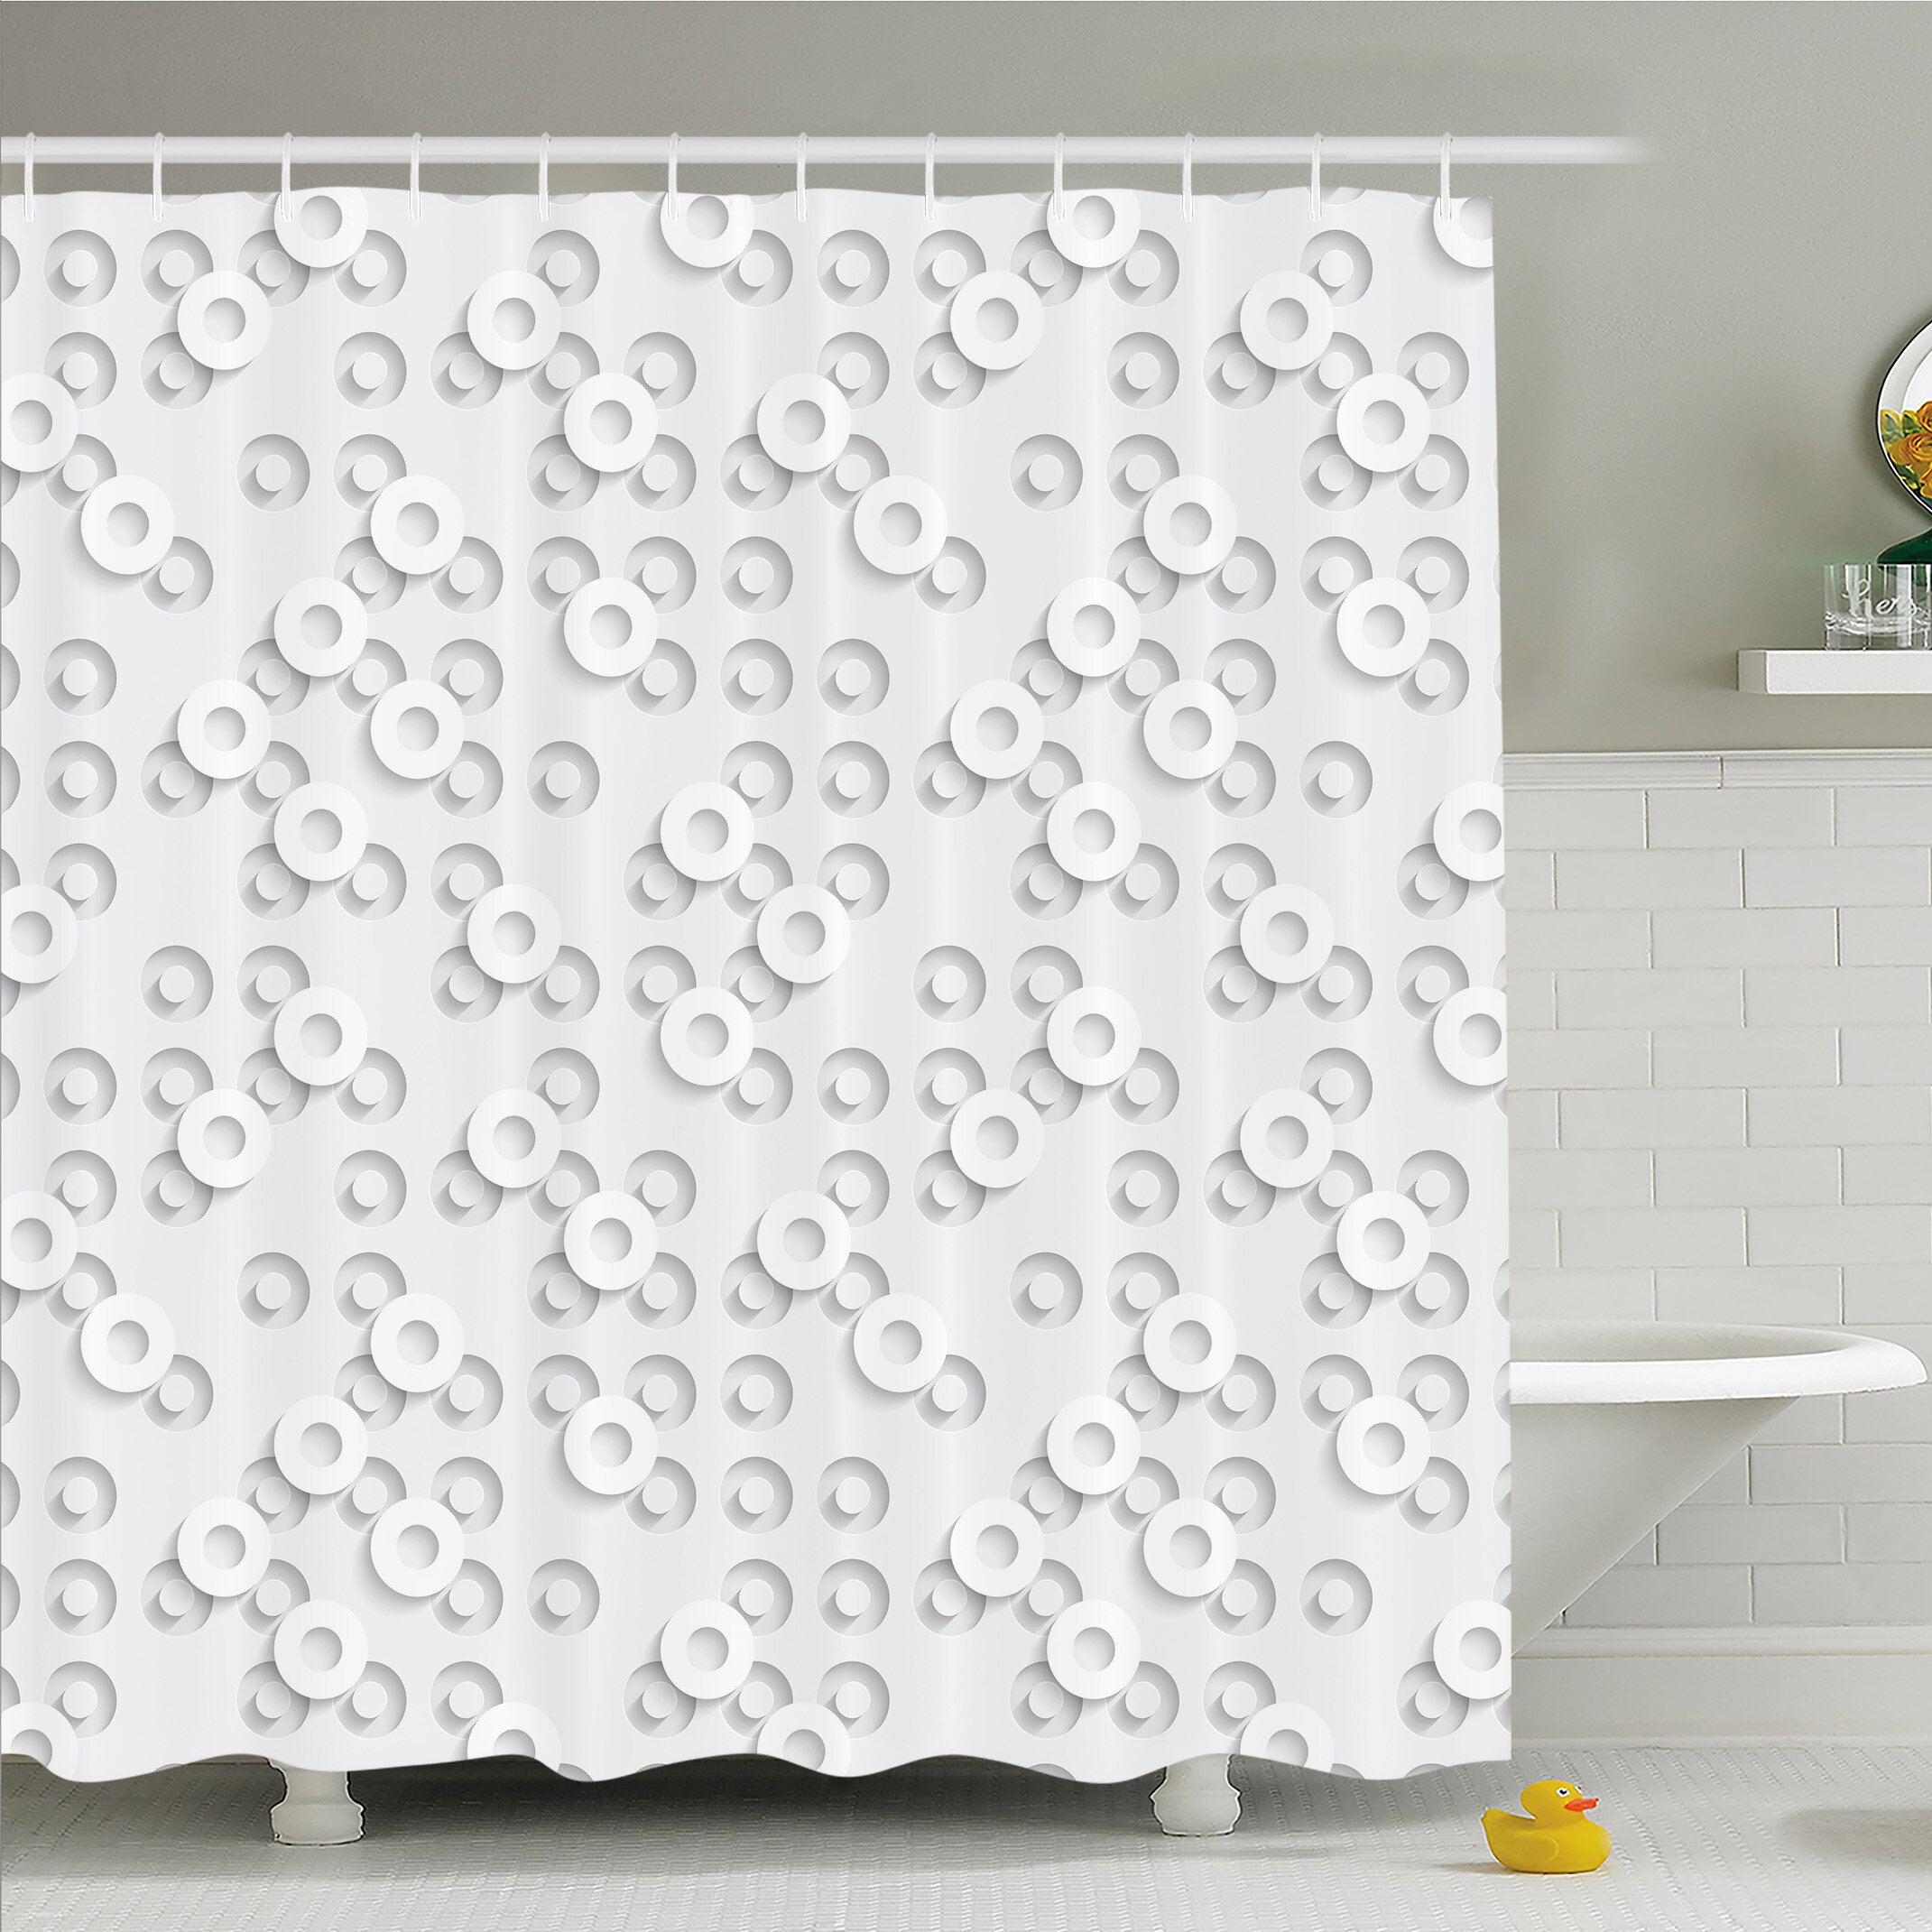 Standard Ambesonne Shower Curtains Shower Liners You Ll Love In 2021 Wayfair